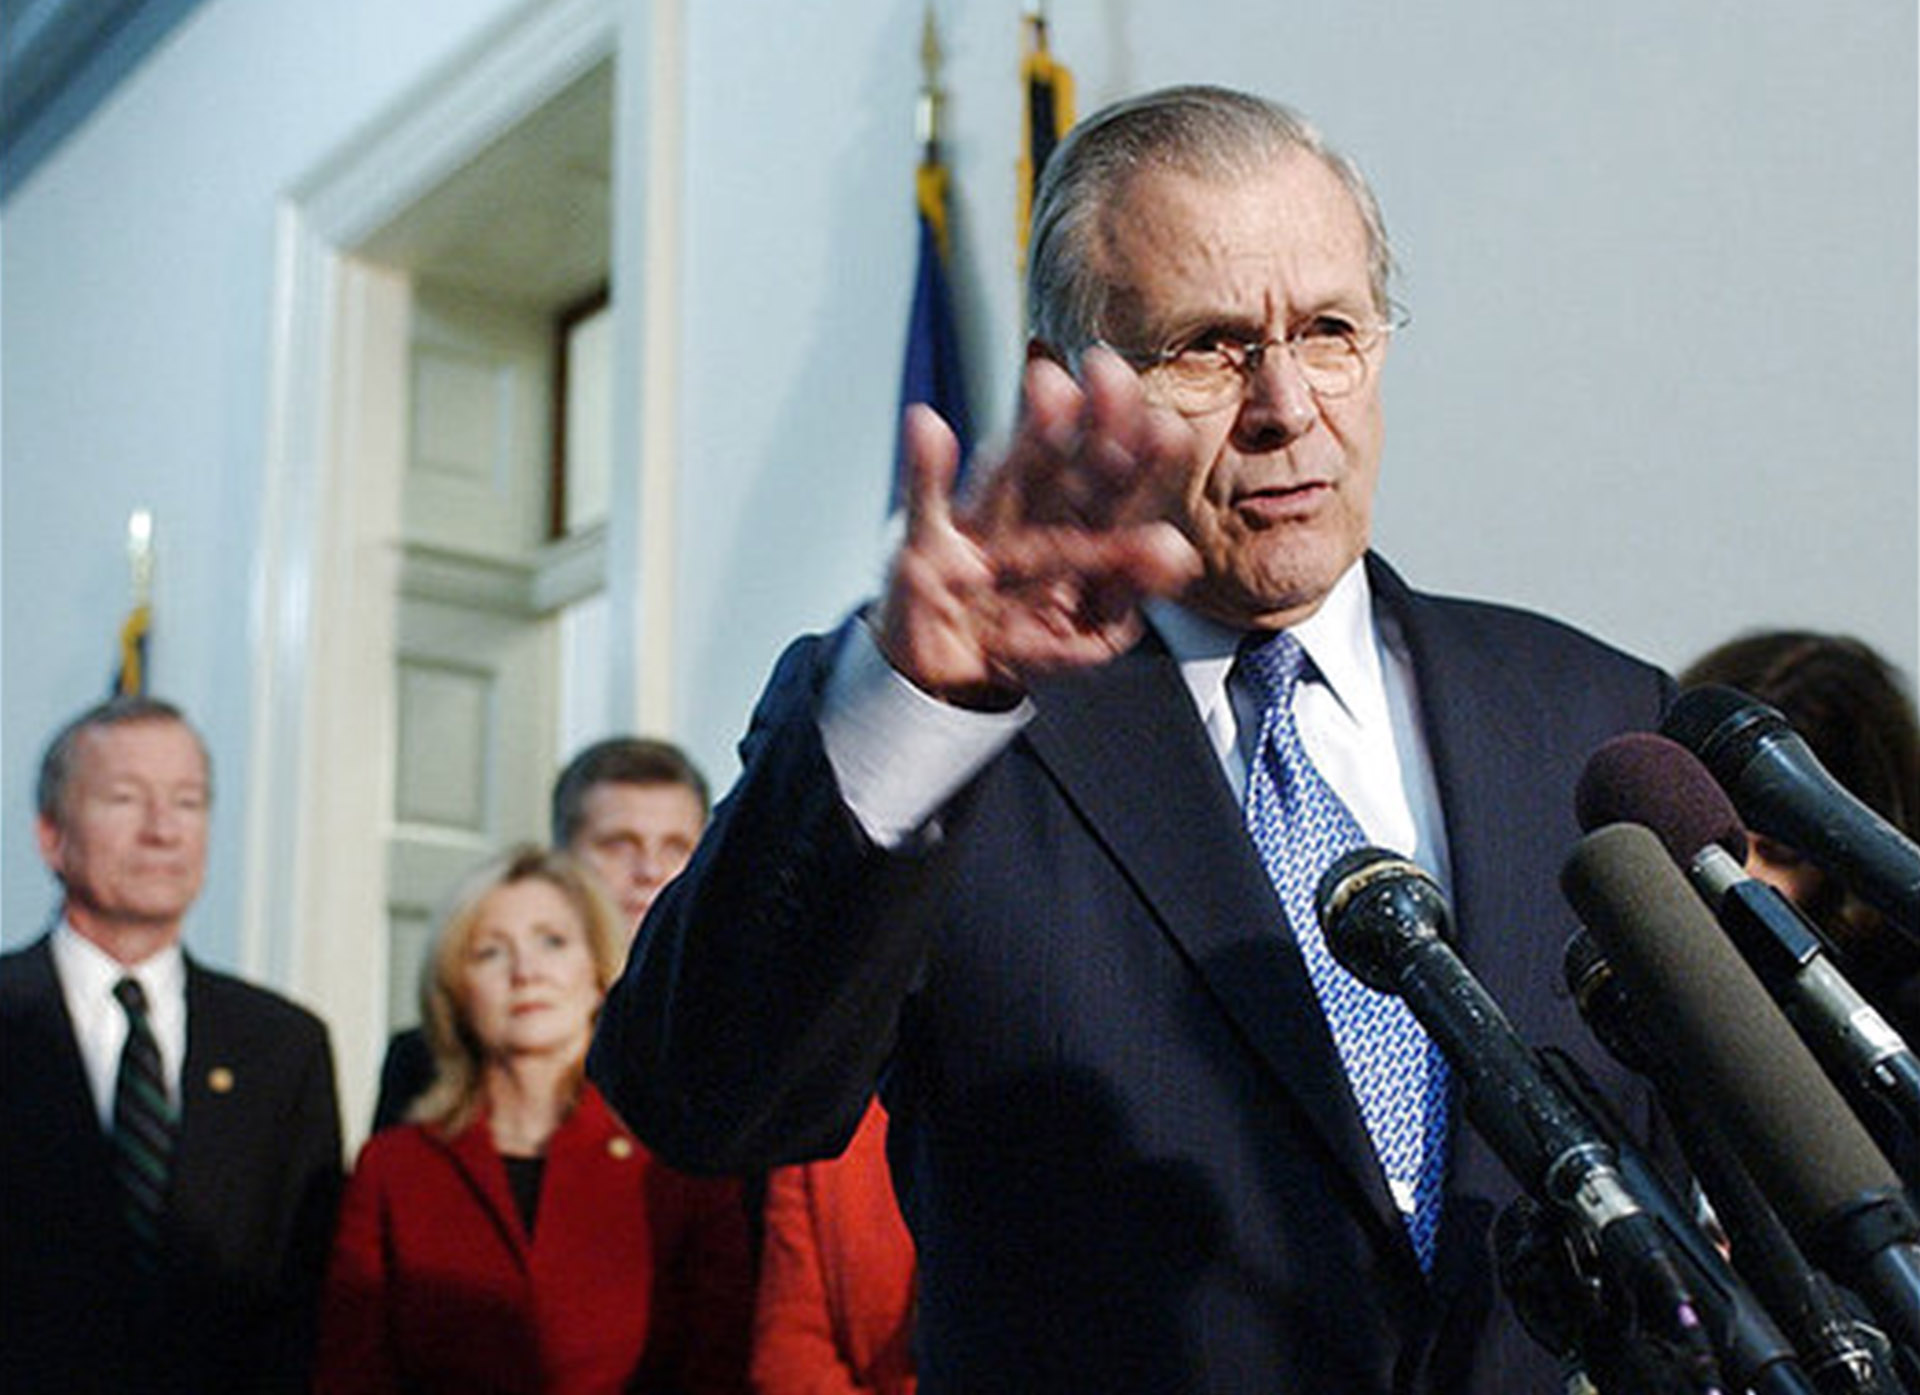 Defense Secretary Donald Rumsfeld talks to reporters following a meeting with members of Congress on Capitol Hill Thursday, Dec. 8, 2005, on the war in Iraq.   Rumsfeld on Thursday raised the possibility of reducing U.S. troop levels in Iraq next year below the 137,000 baseline.   (AP Photo/Dennis Cook)